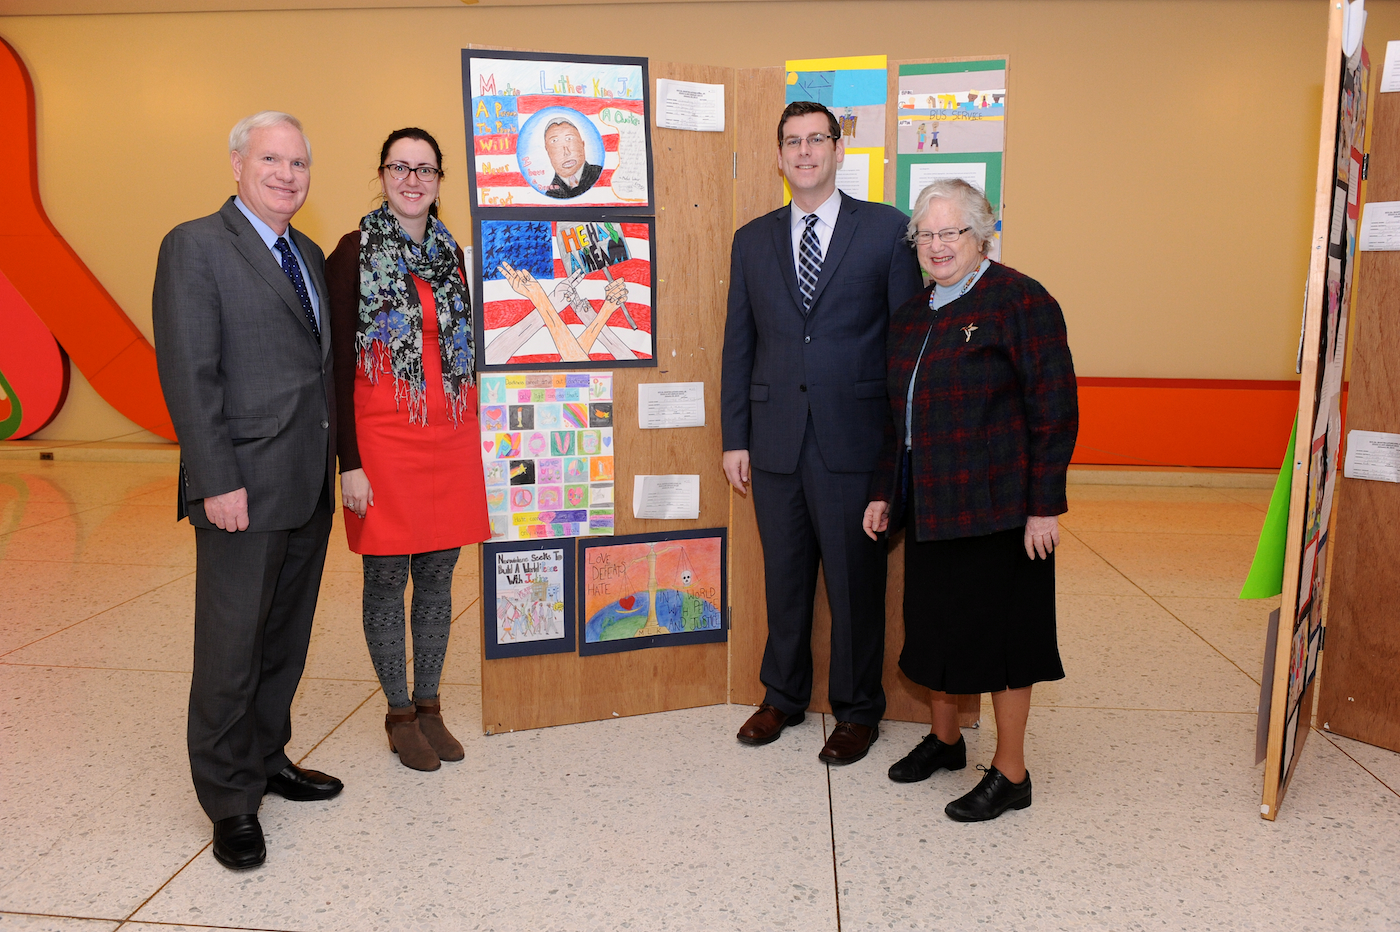 On Tuesday, January 14, 2014, Assemblyman Braunstein, joined by Senator Tony Avella, Senator Toby Ann Stavisky, and Assemblywoman Nily Rozic celebrated the artwork submitted by M.S. 158 students Ariana Belliard and Grace Na as part of the NYS Office of MWBE & Community Relations' 2014 Fine Art & Essay Display for Dr. Martin Luther King, Jr. at the Empire State Plaza in Albany.